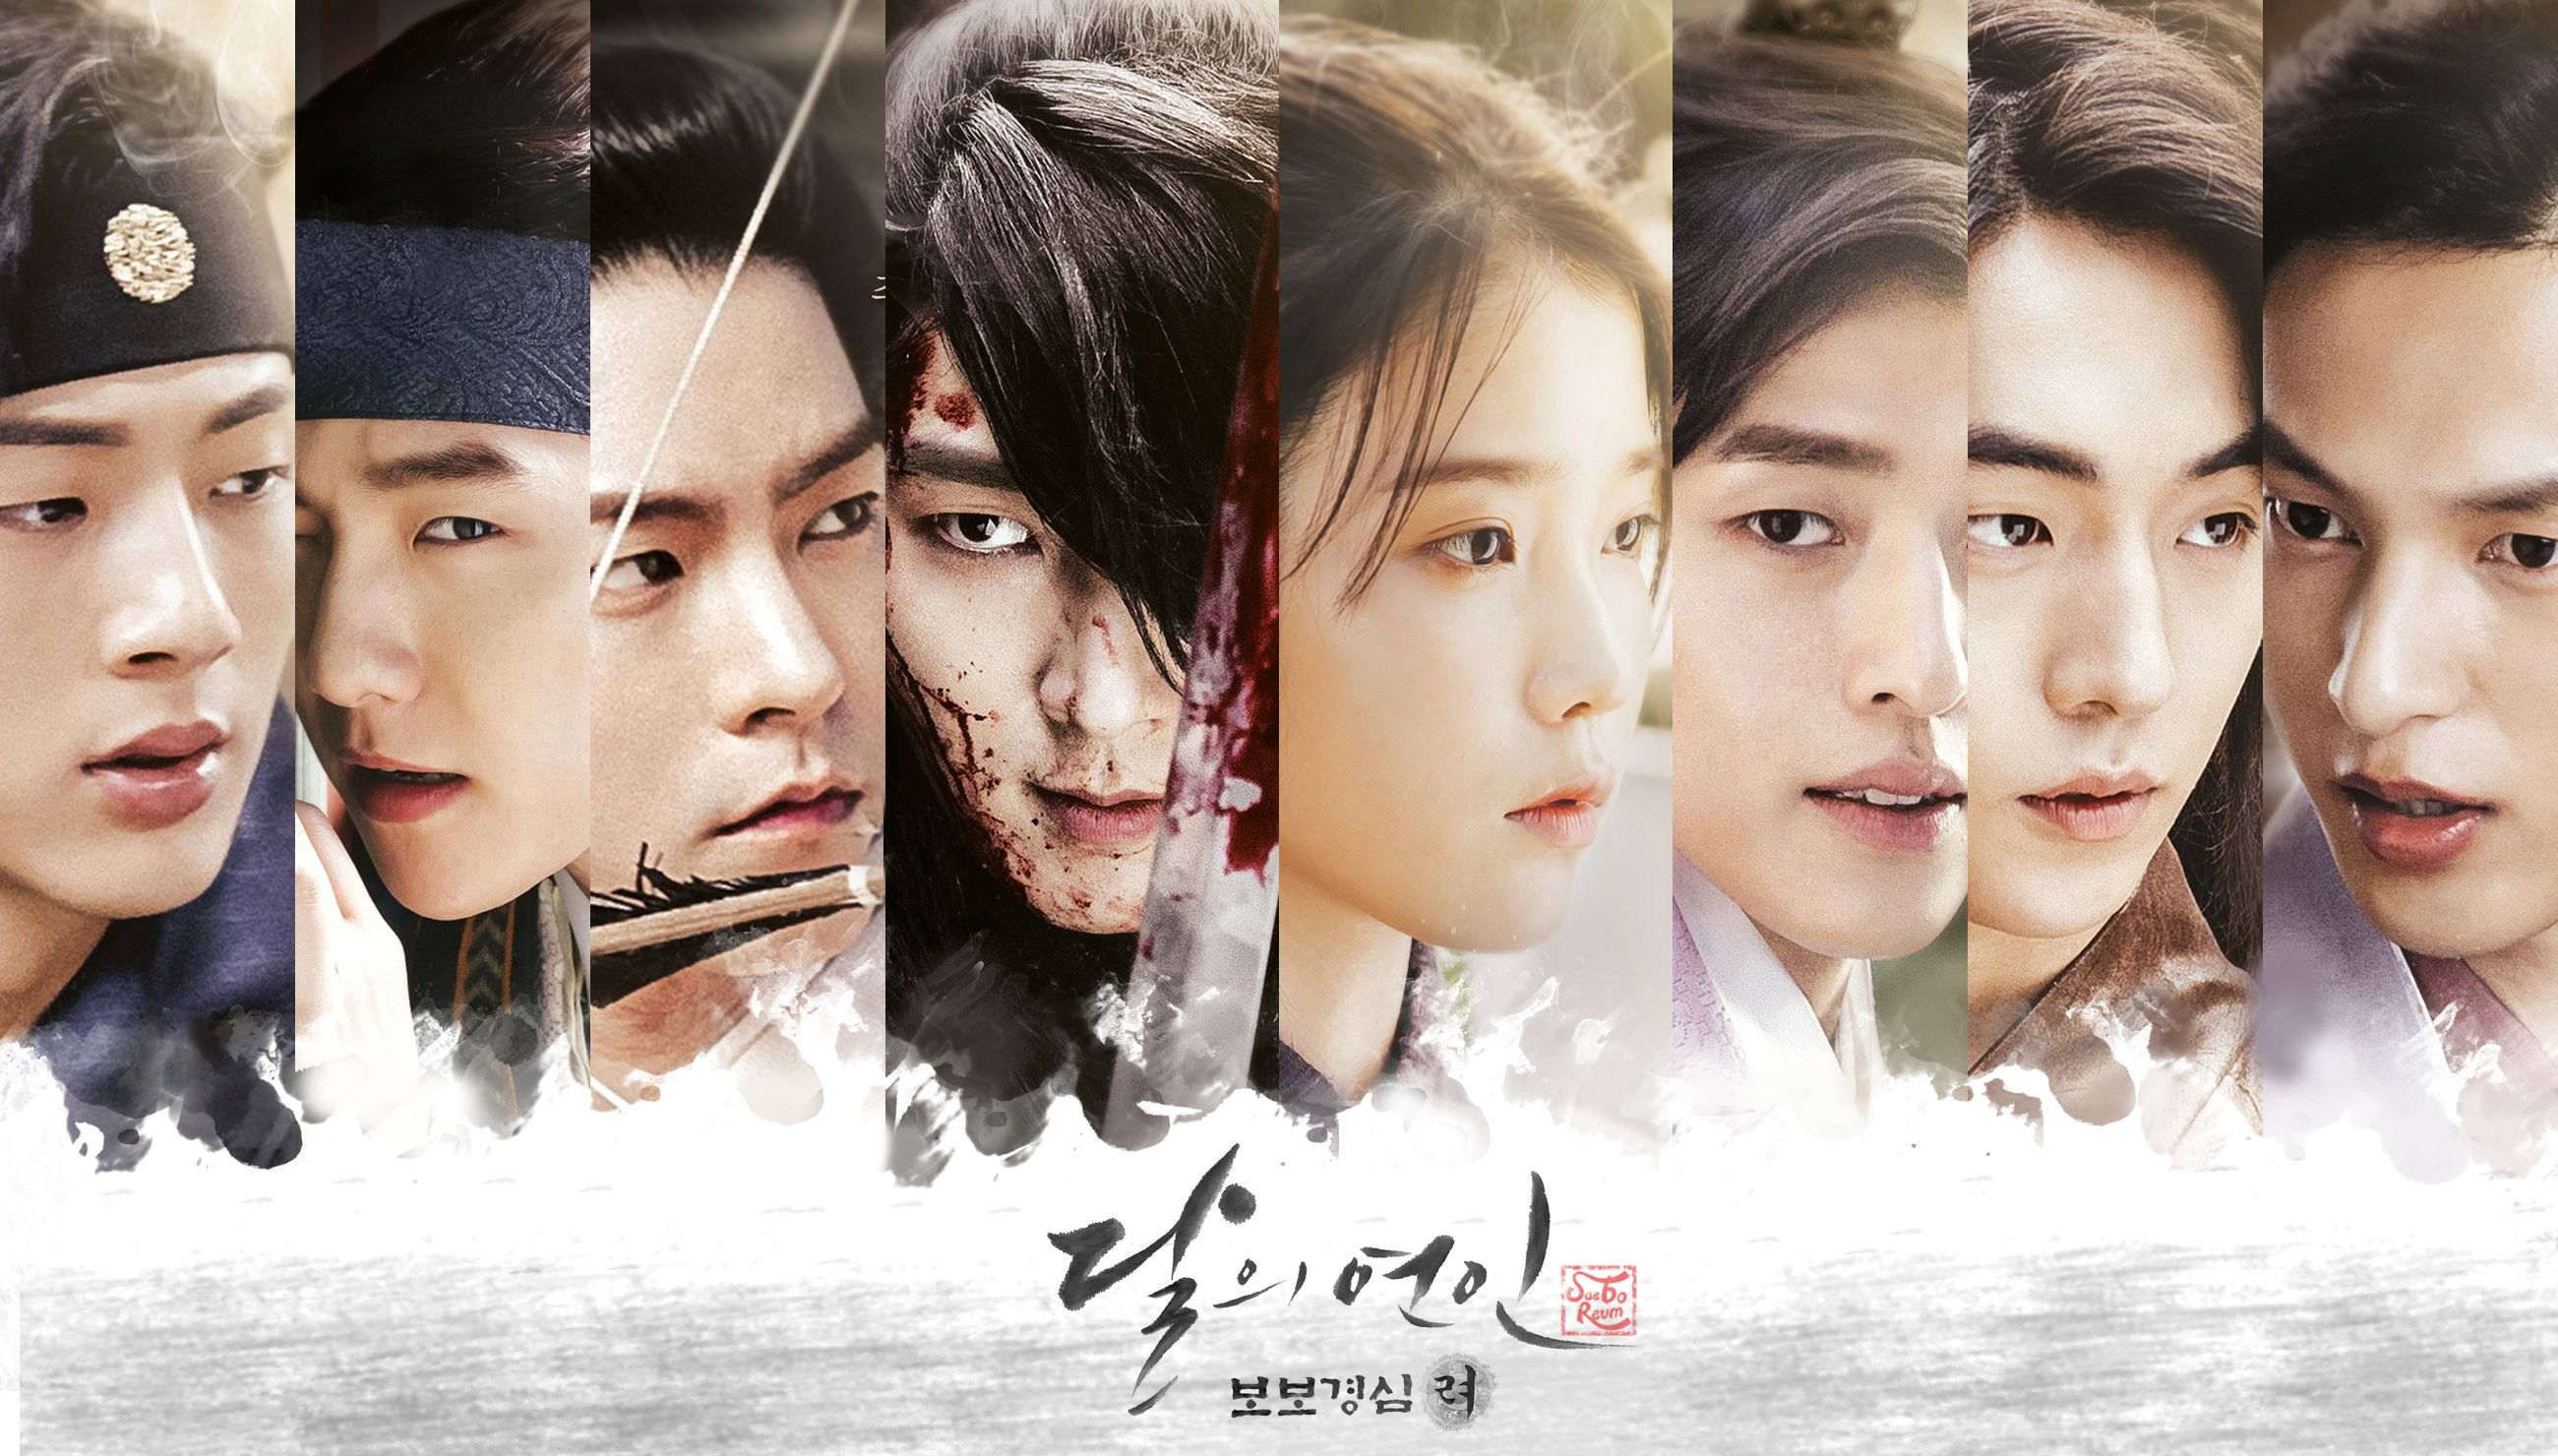 10 Best Korean Dramas - Moon Lovers: Scarlet Heart Ryeo